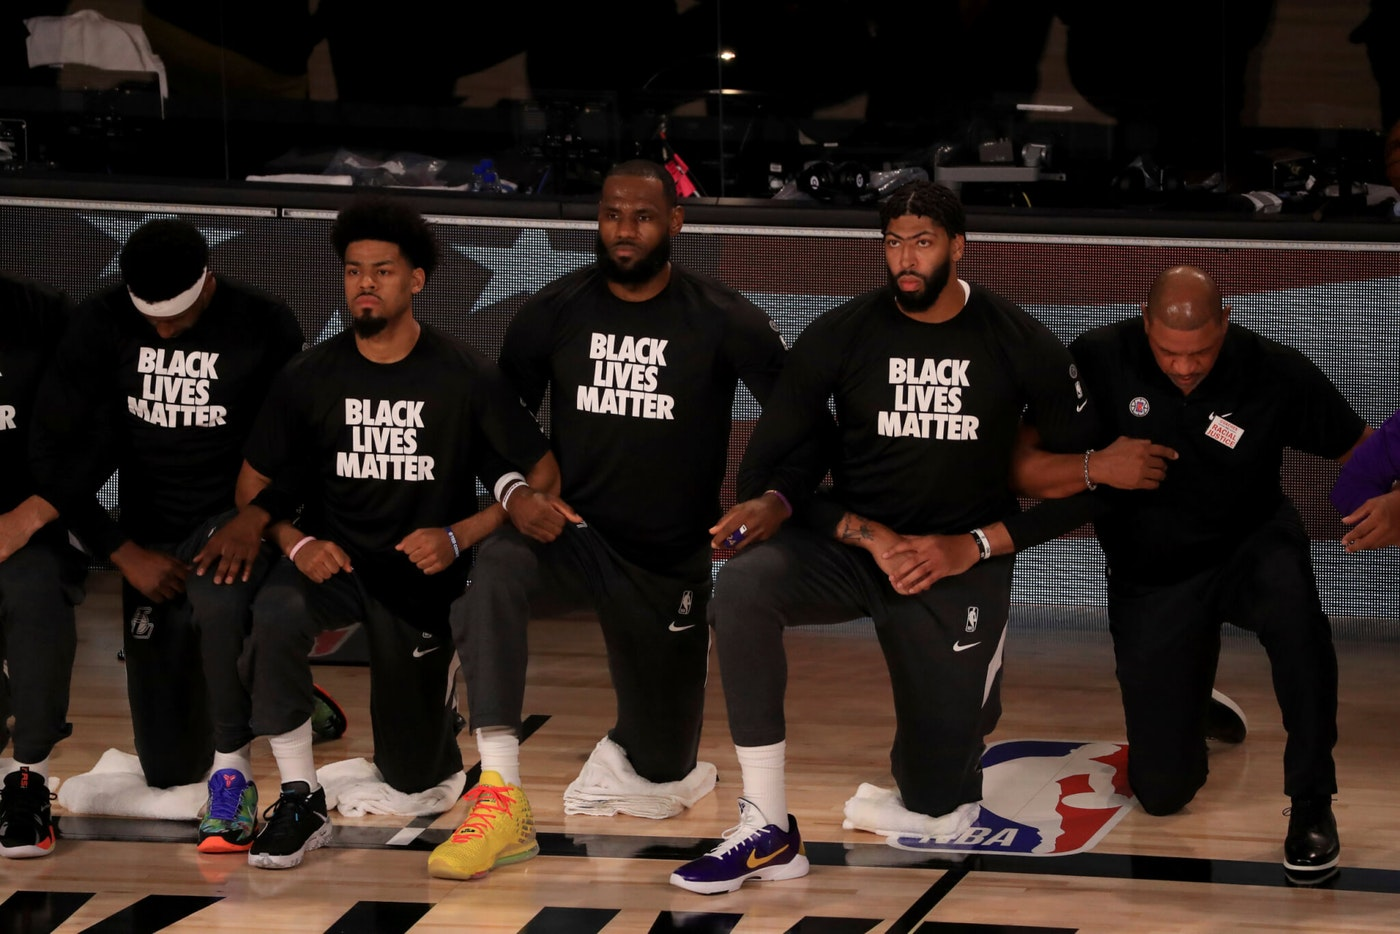 Lebron James is just one of the many athletes who have stood up to support Black Lives Matter since George Floyd's killing by police in May.